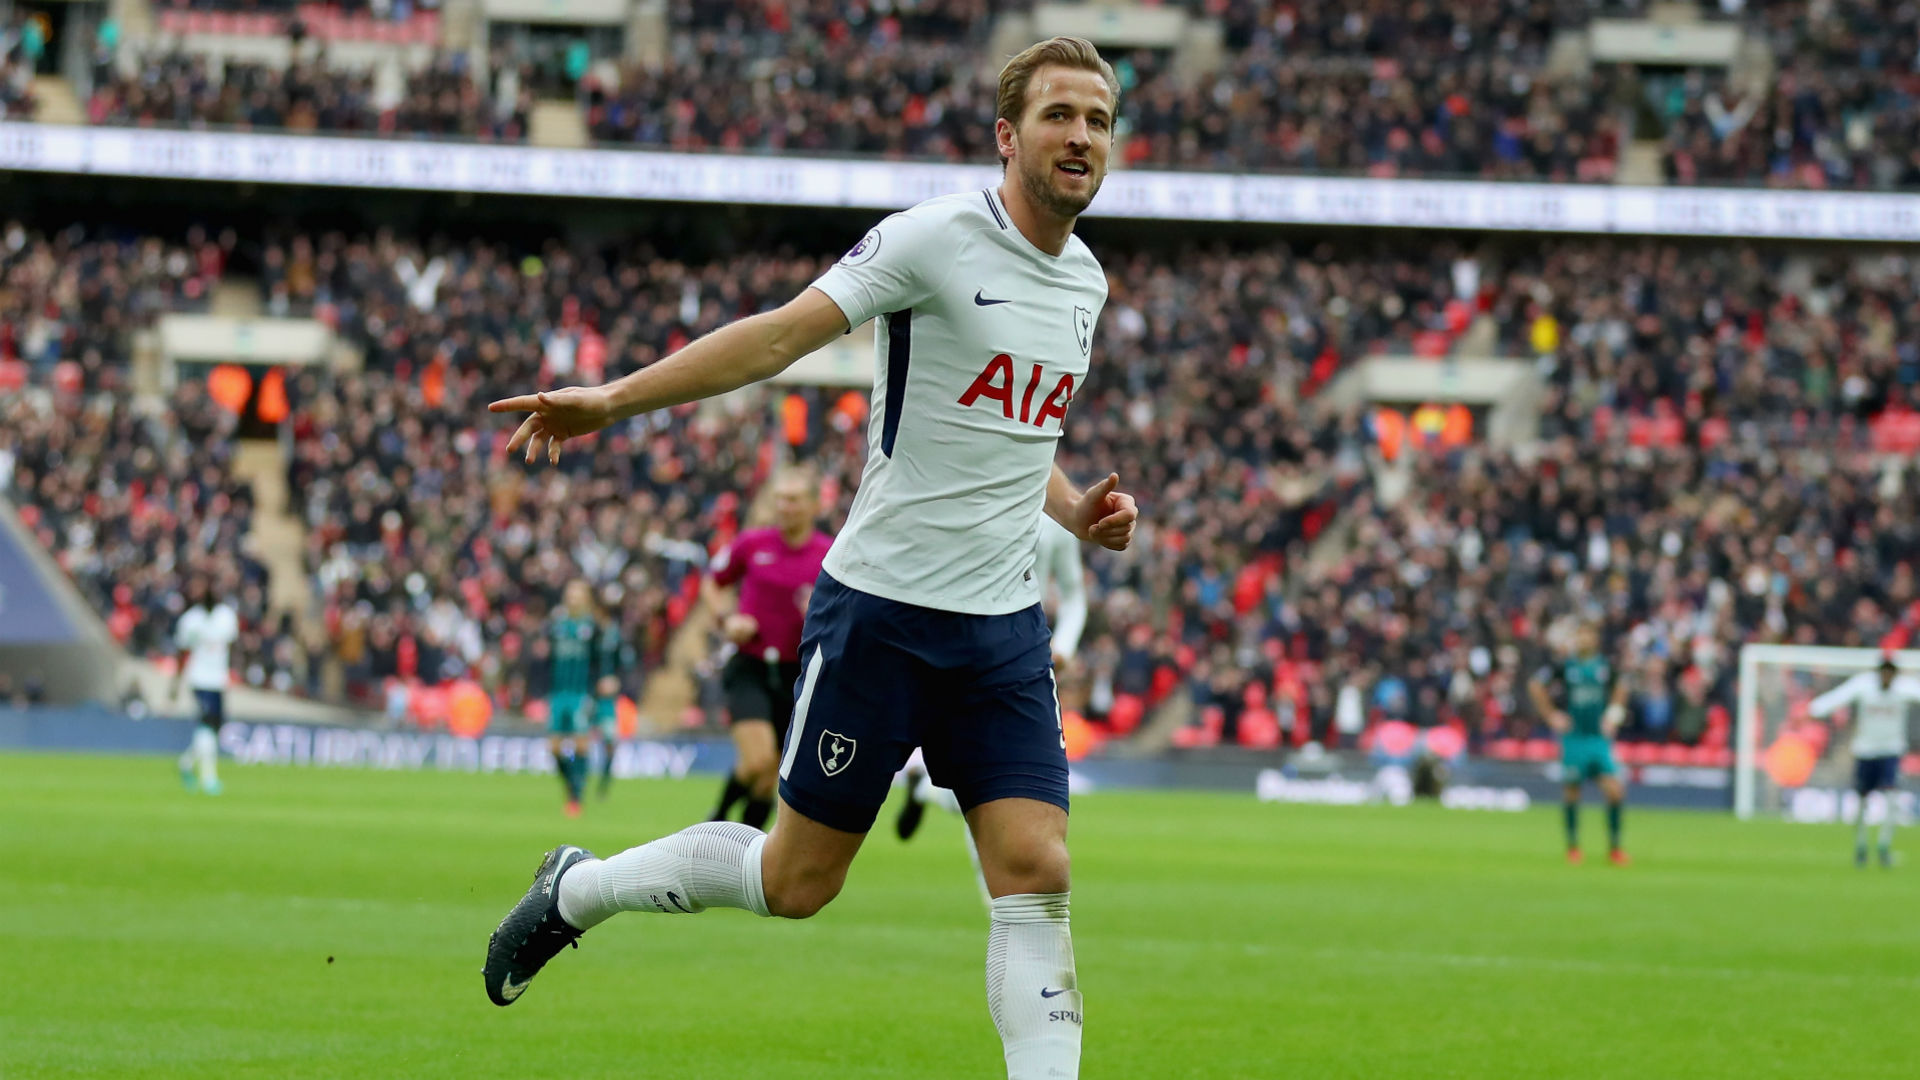 Shearer surpassed, Messi eclipsed - Kane's record-breaking 2017